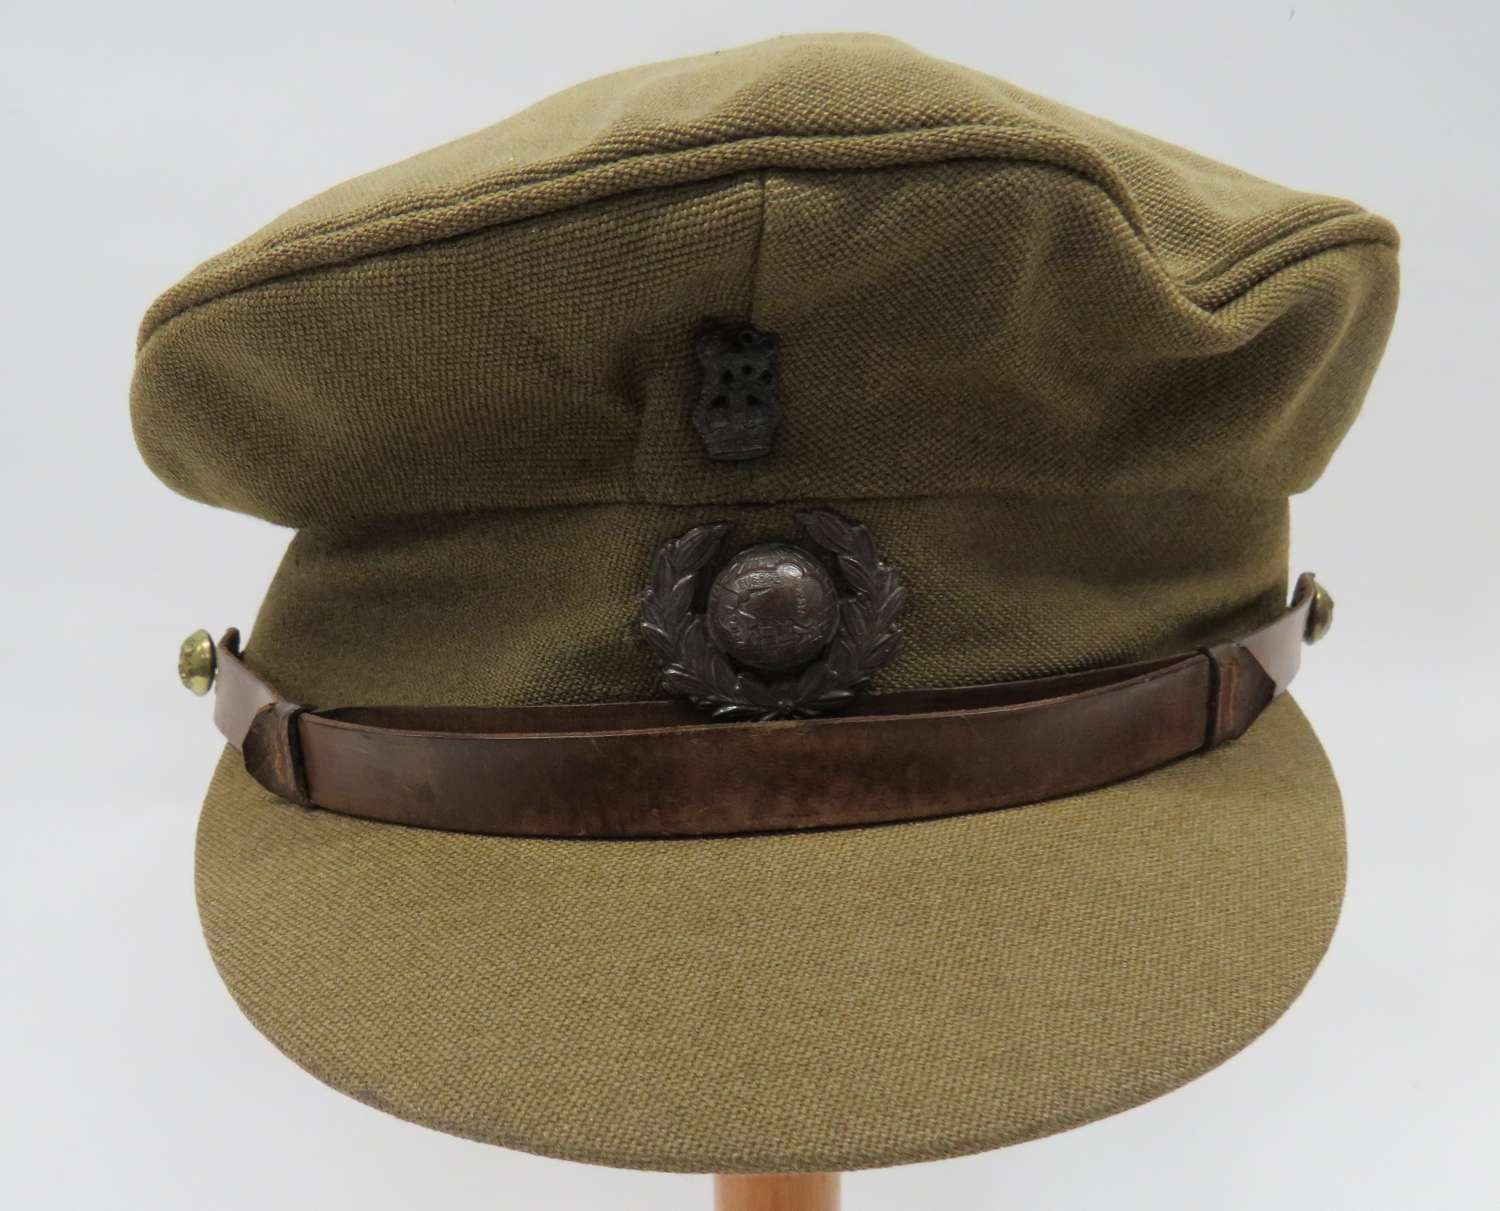 WW2 Royal Marines Officers Service Dress Cap